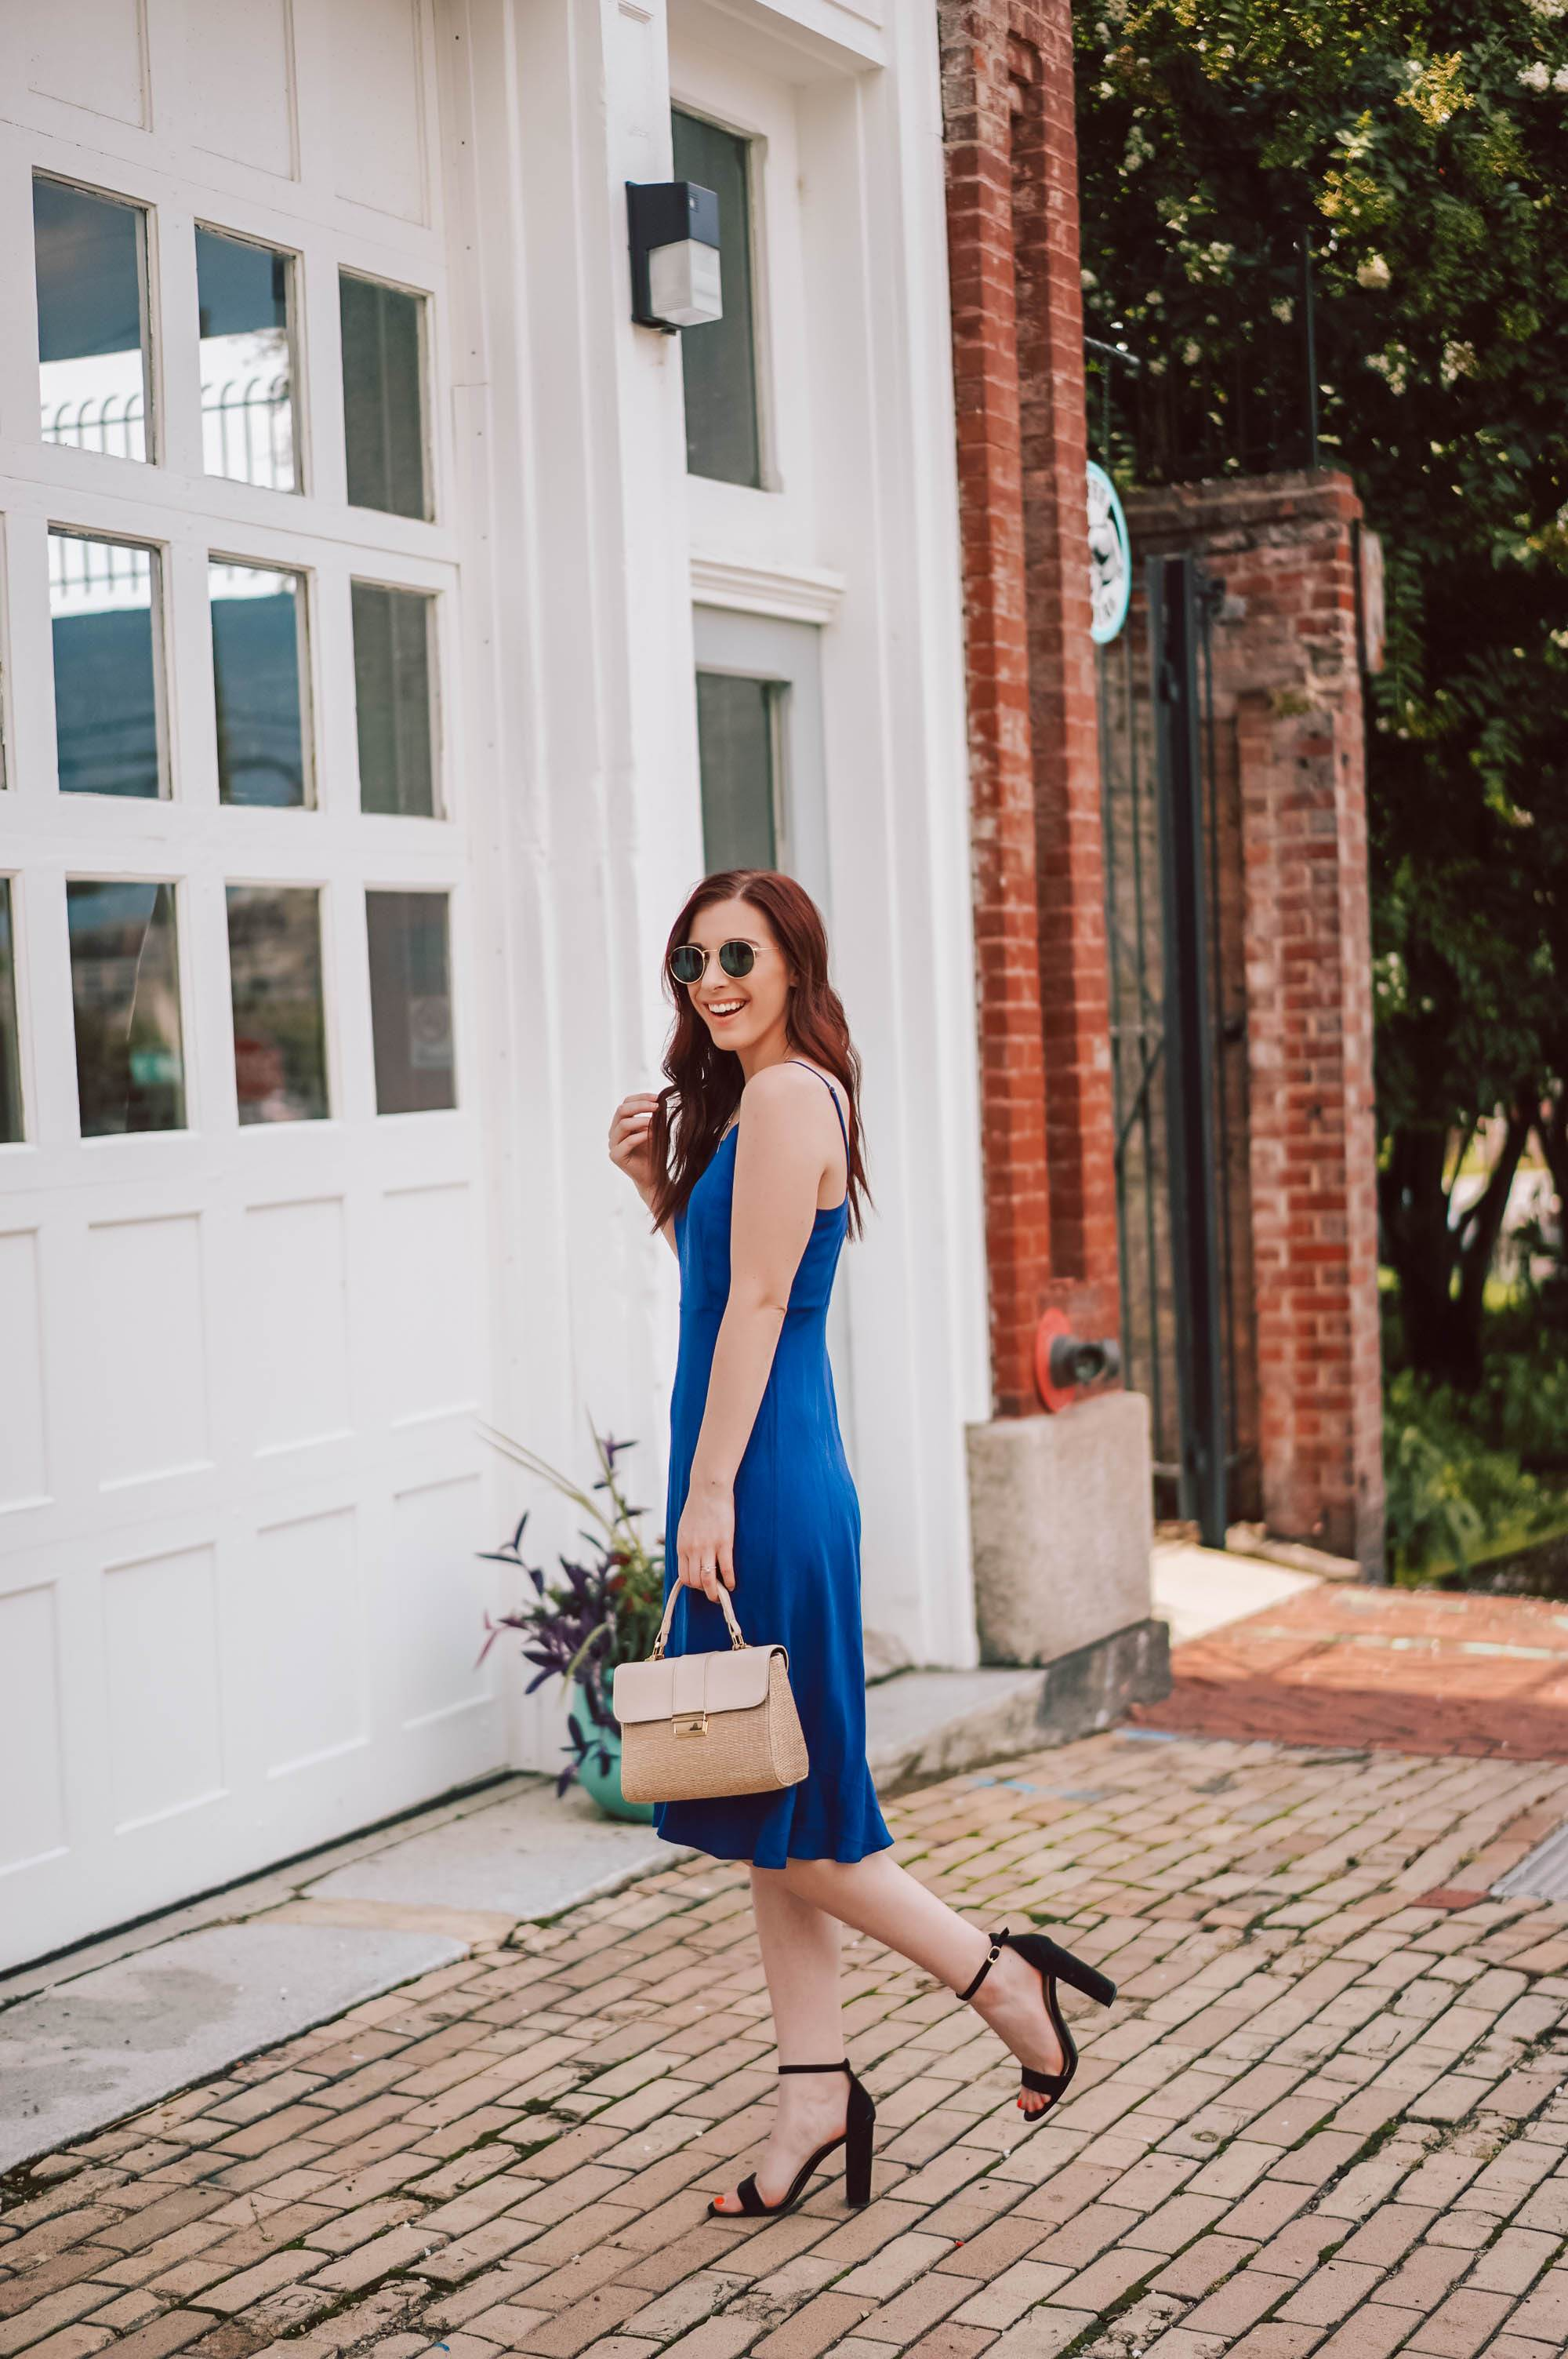 The $12 Dress You'll Never Want to Take Off